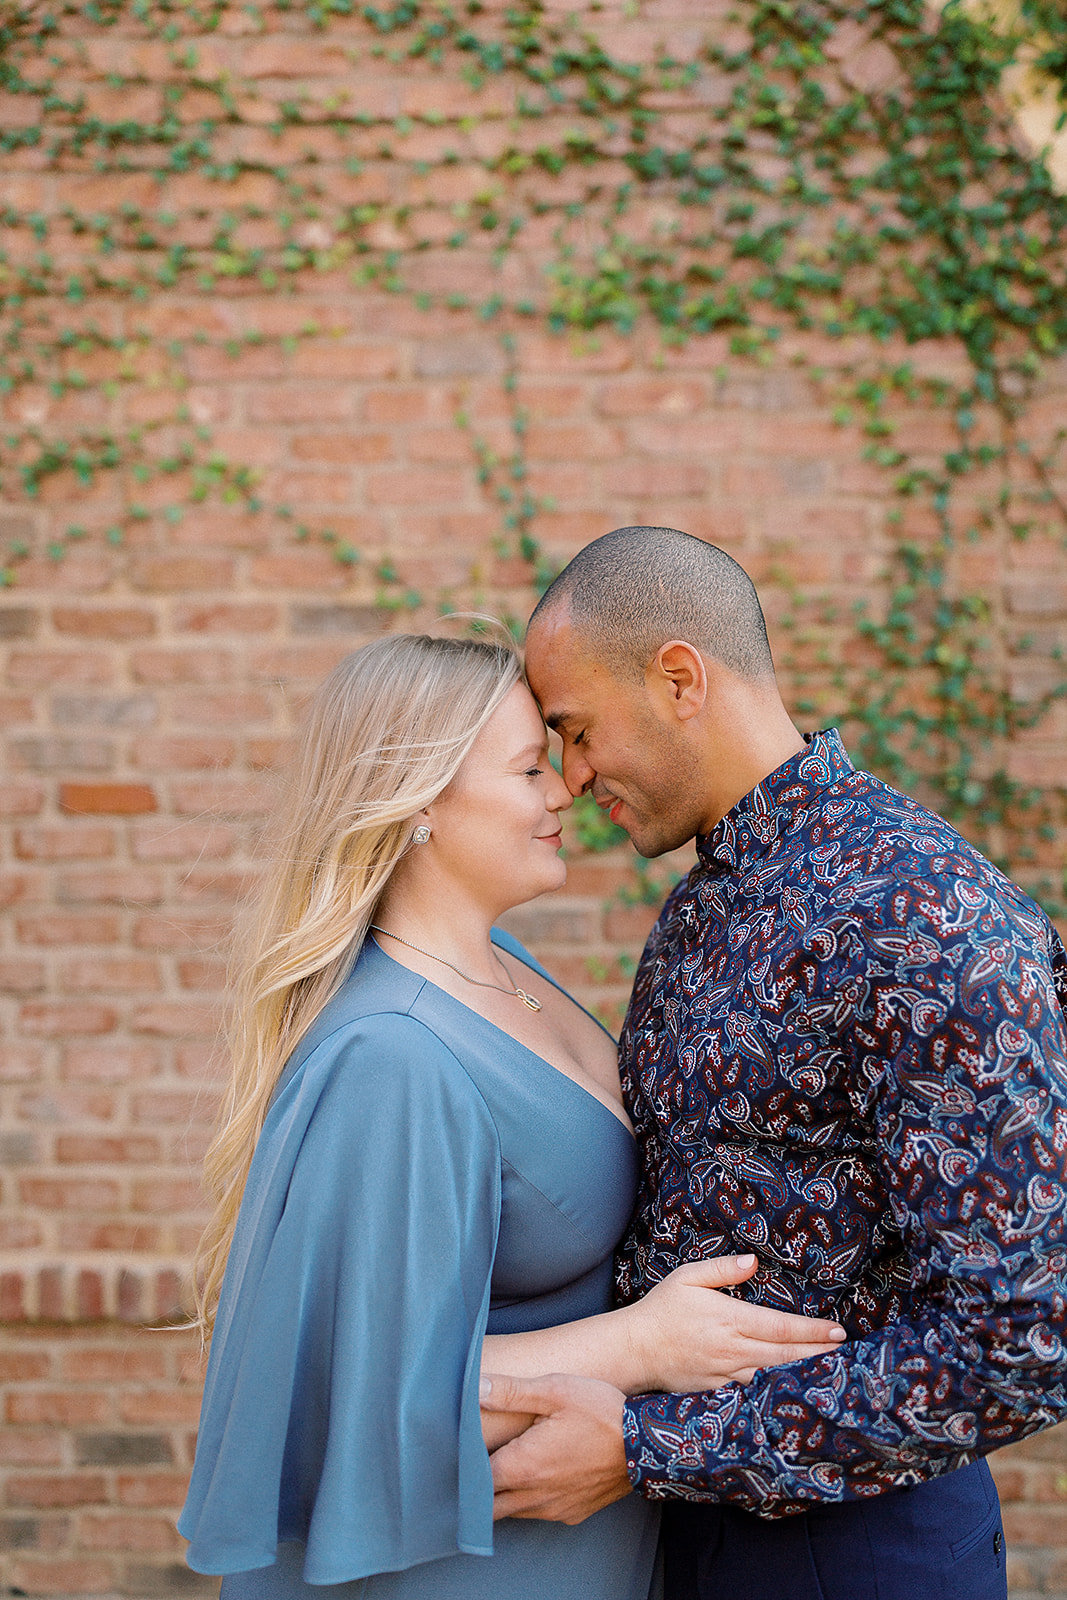 Rachel_+_Manny_Bello_Engagement_Session_Bella_Collina_Photographer_Casie_Marie_Photography-7